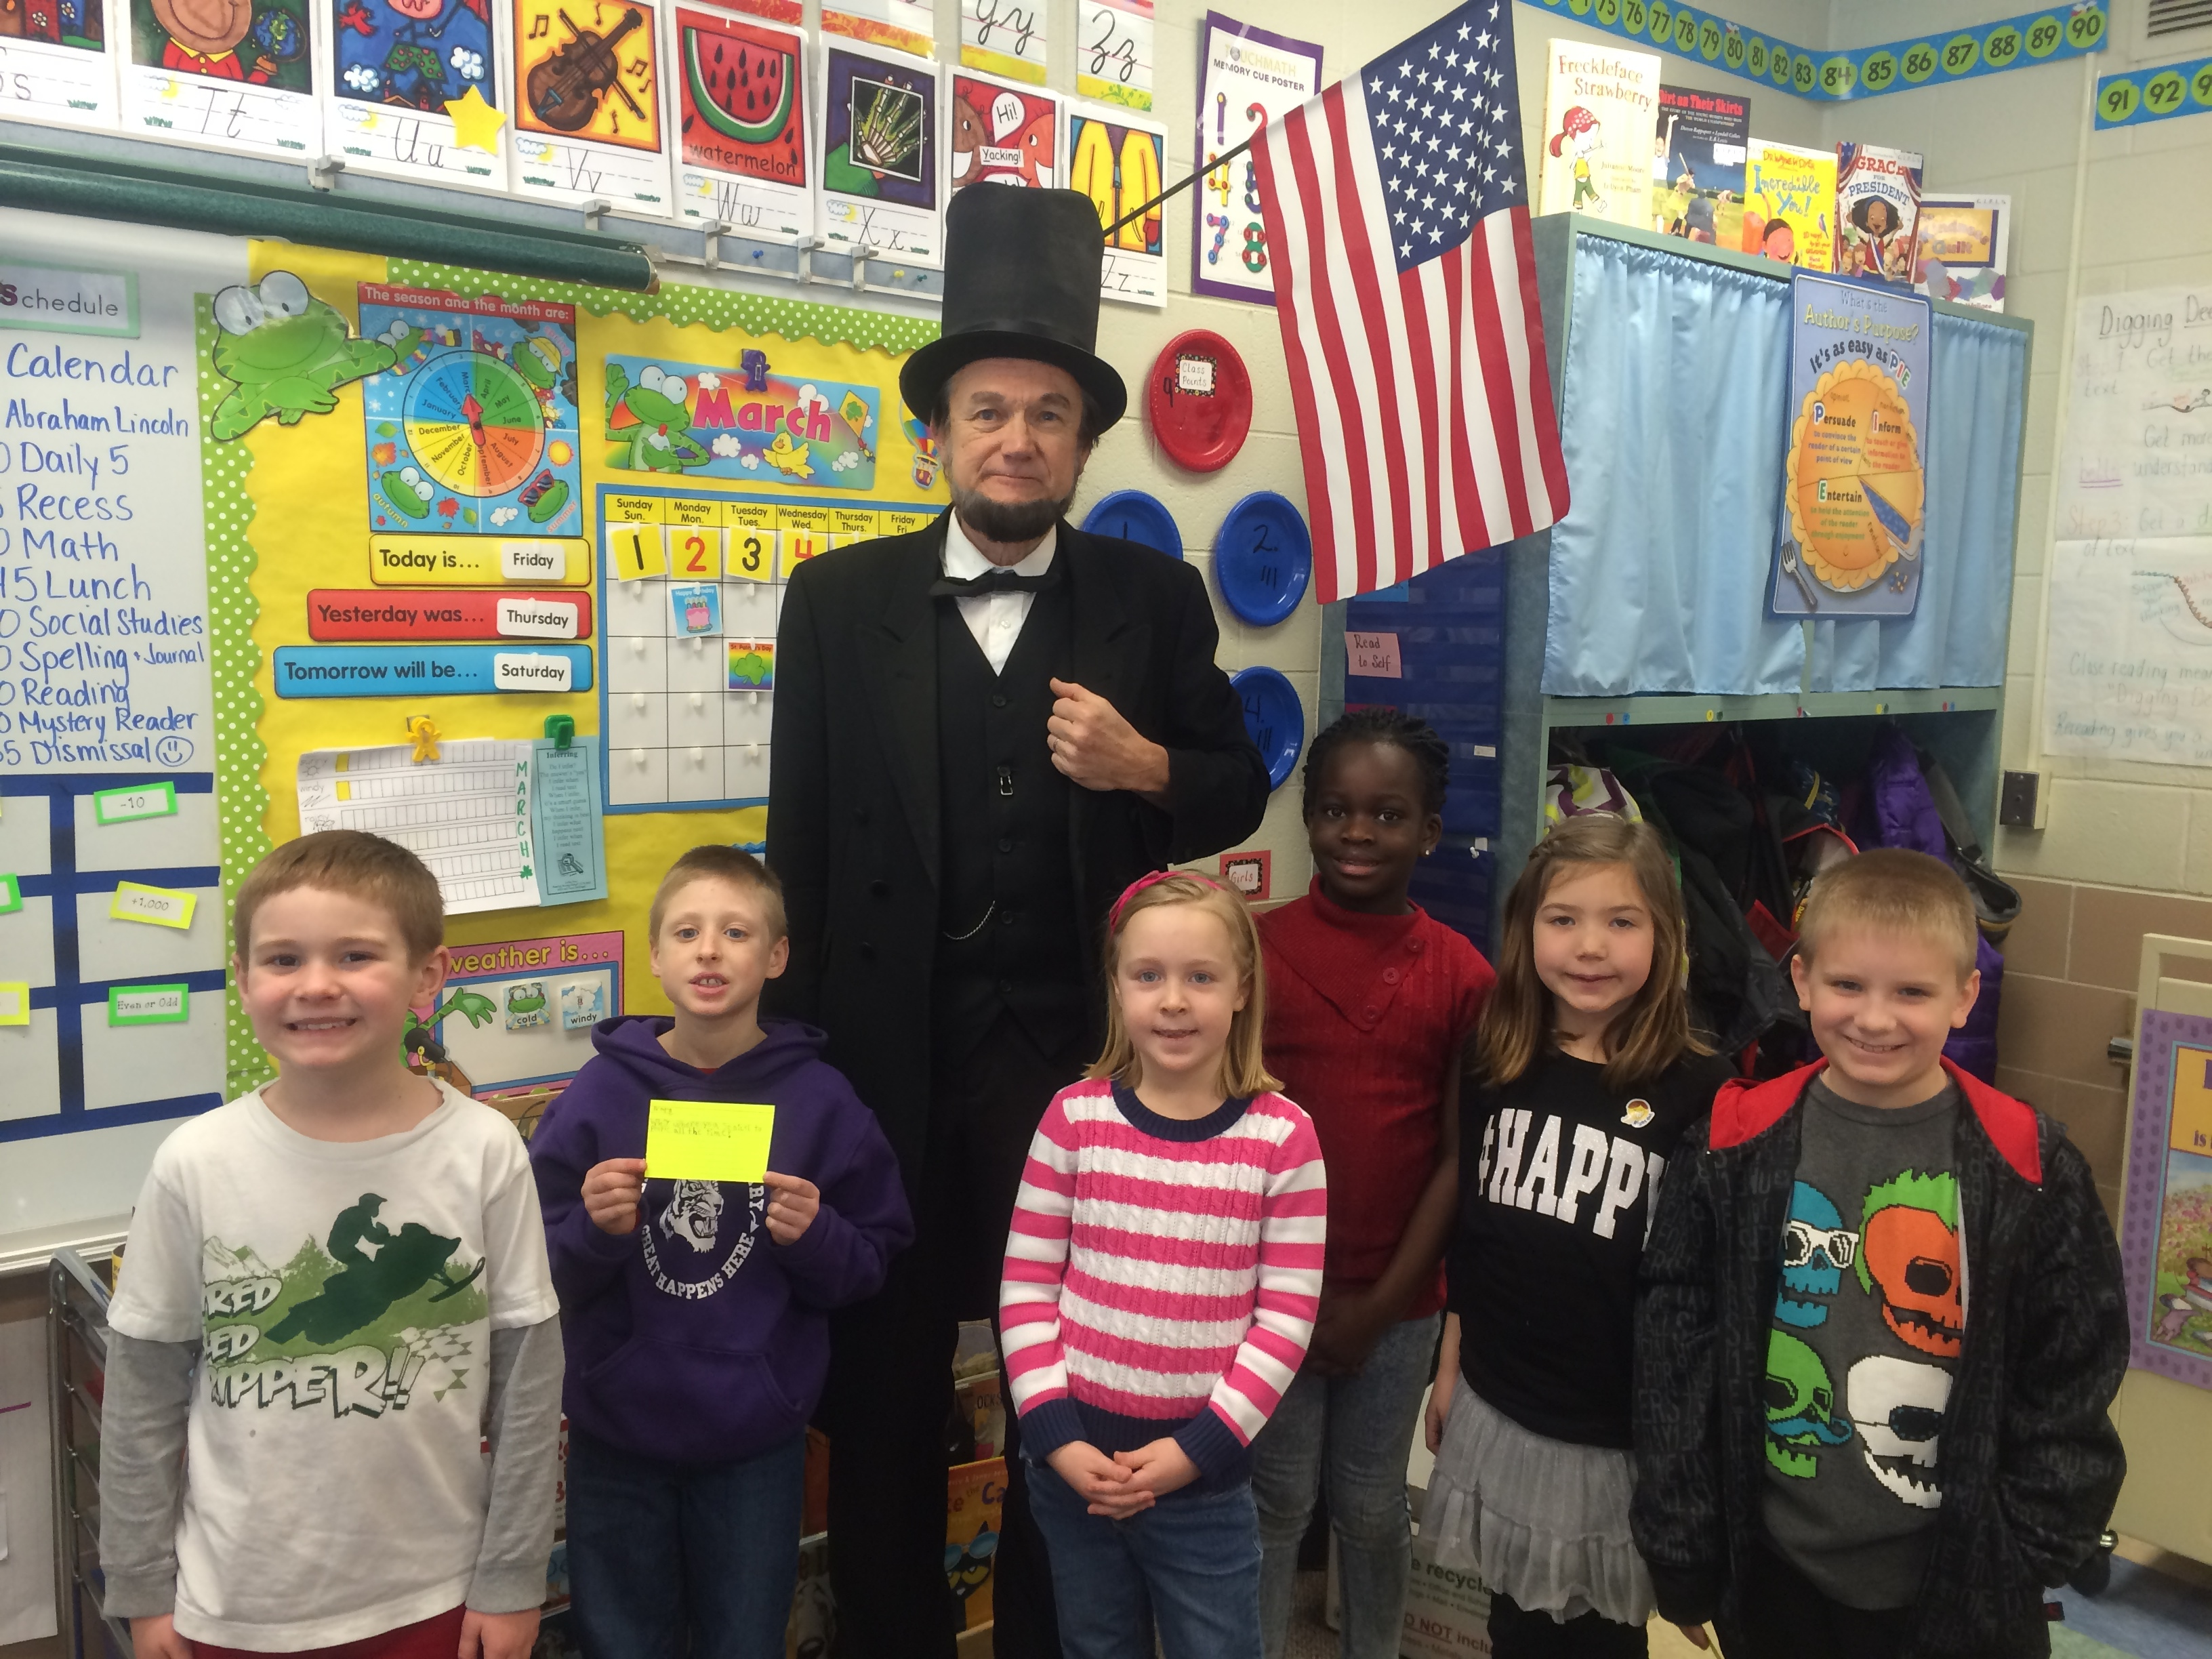 A Visit From Abraham Lincoln